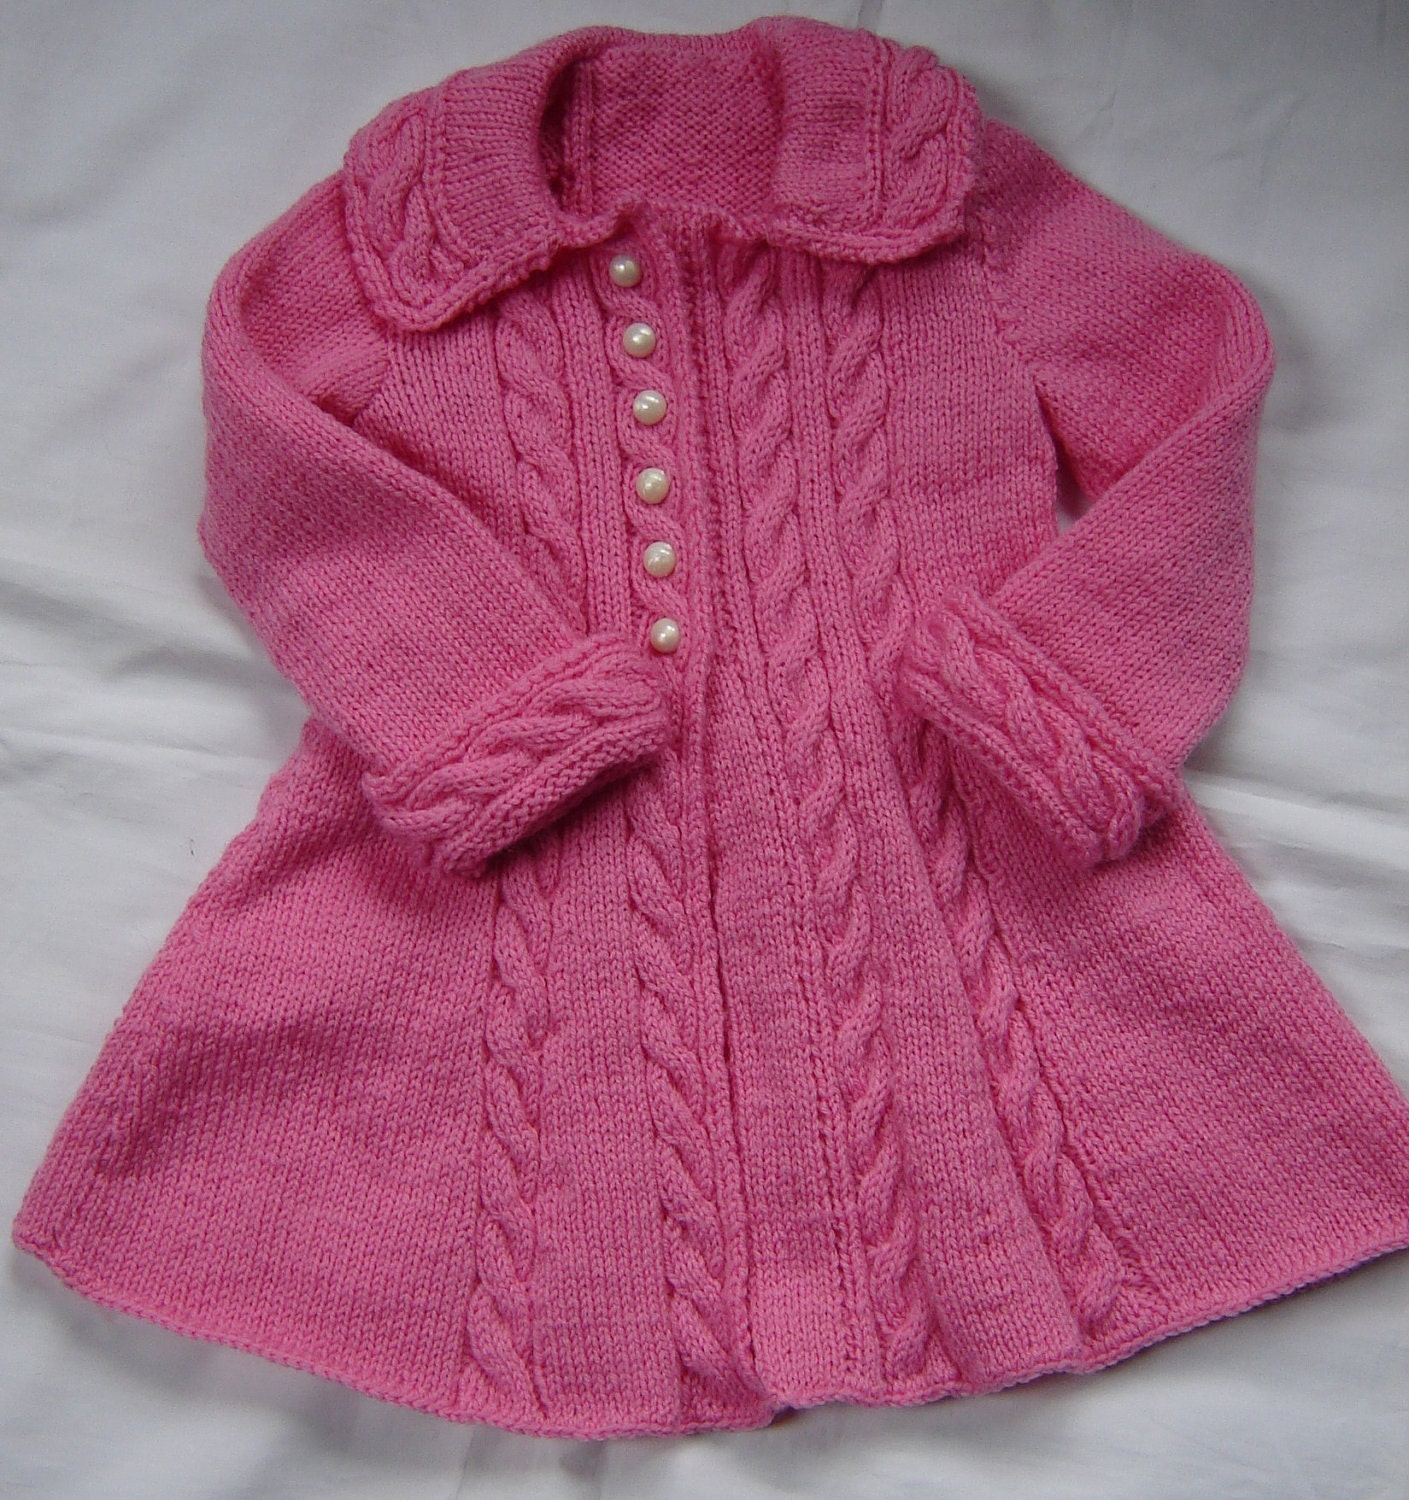 Knitting Pattern Cardigan Girl : Baby Girls Toddler Sweater Coat Swing Style Hand Knit Crochet